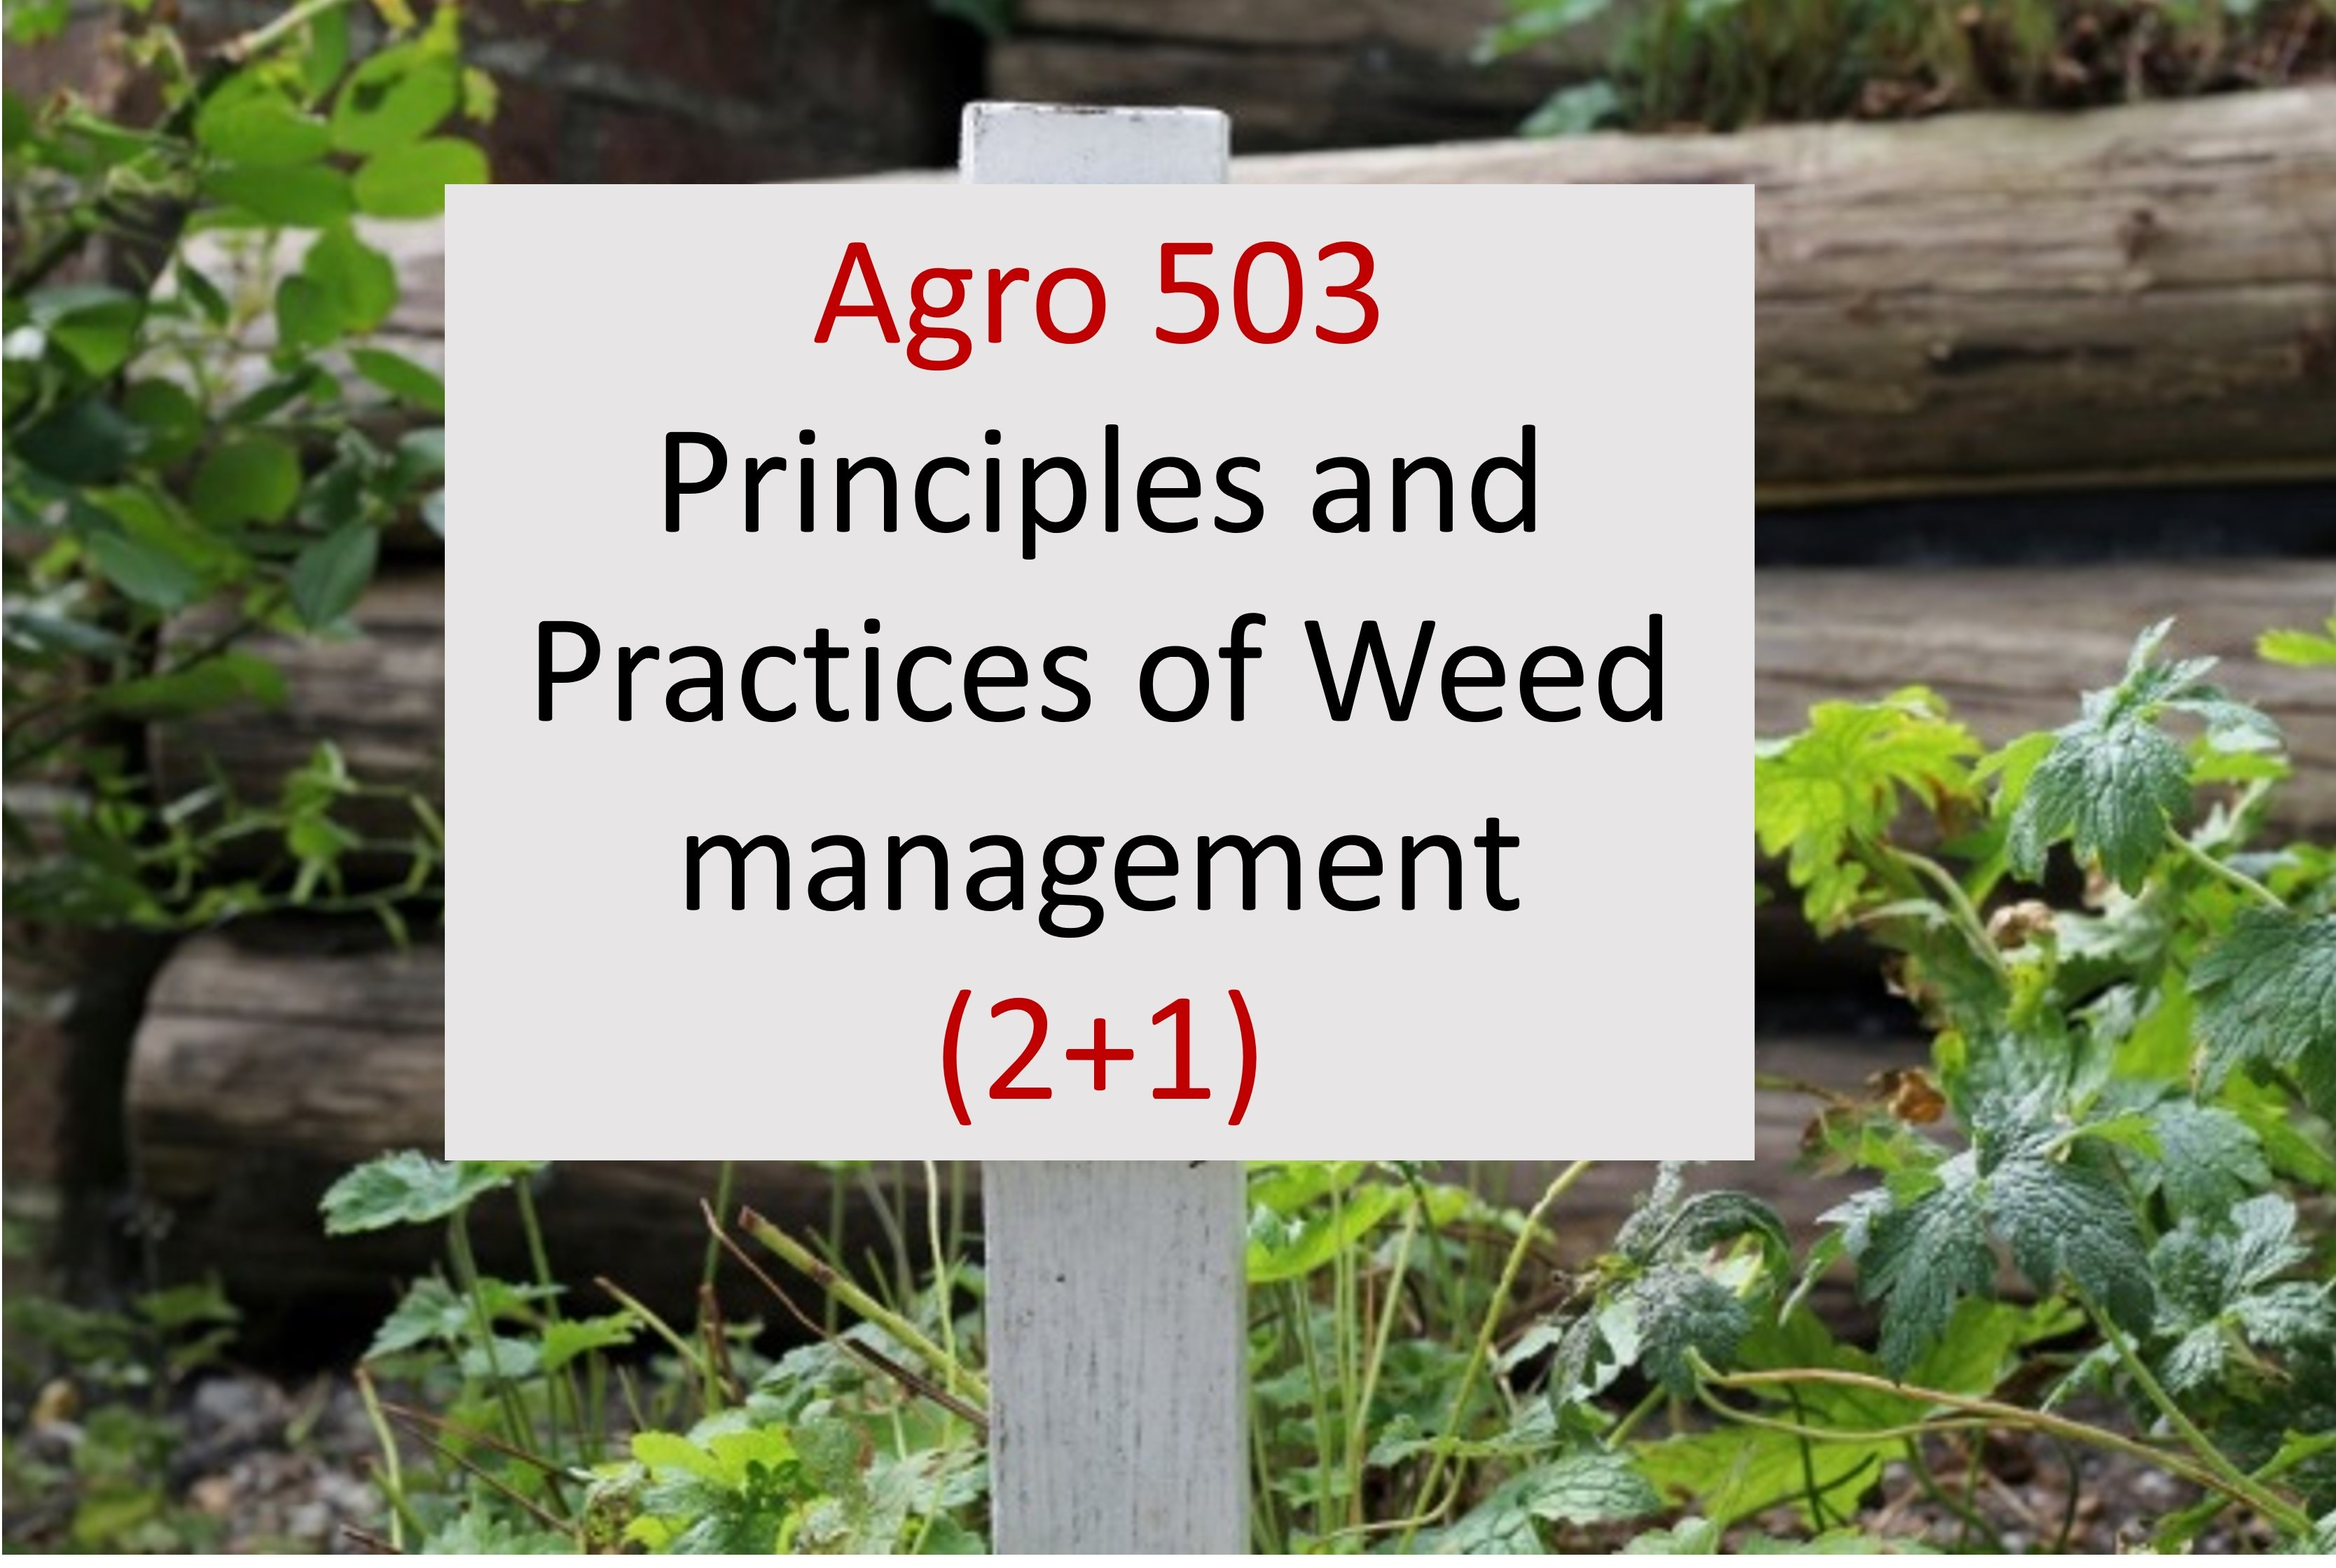 Agro 503 Principles and Practices of Weed management (2+1), Semester 2/ 2019 PG